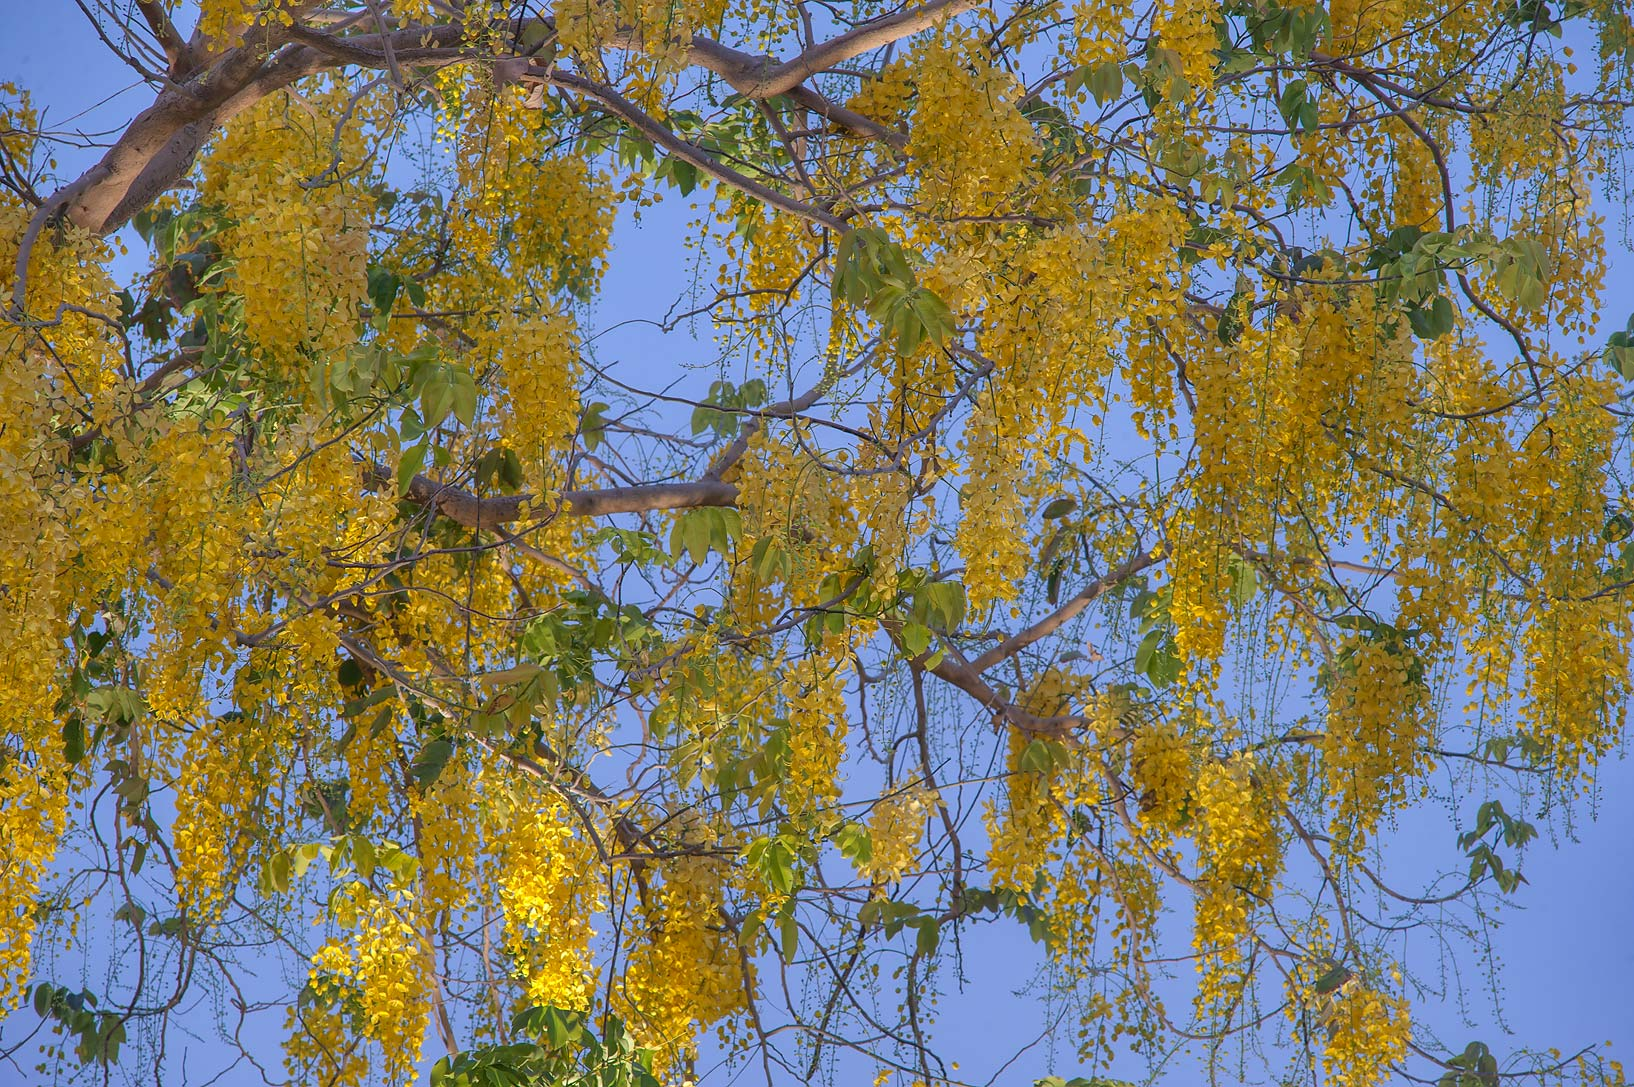 Blooming golden shower tree (Cassia fistula) in Aspire Park at morning. Doha, Qatar